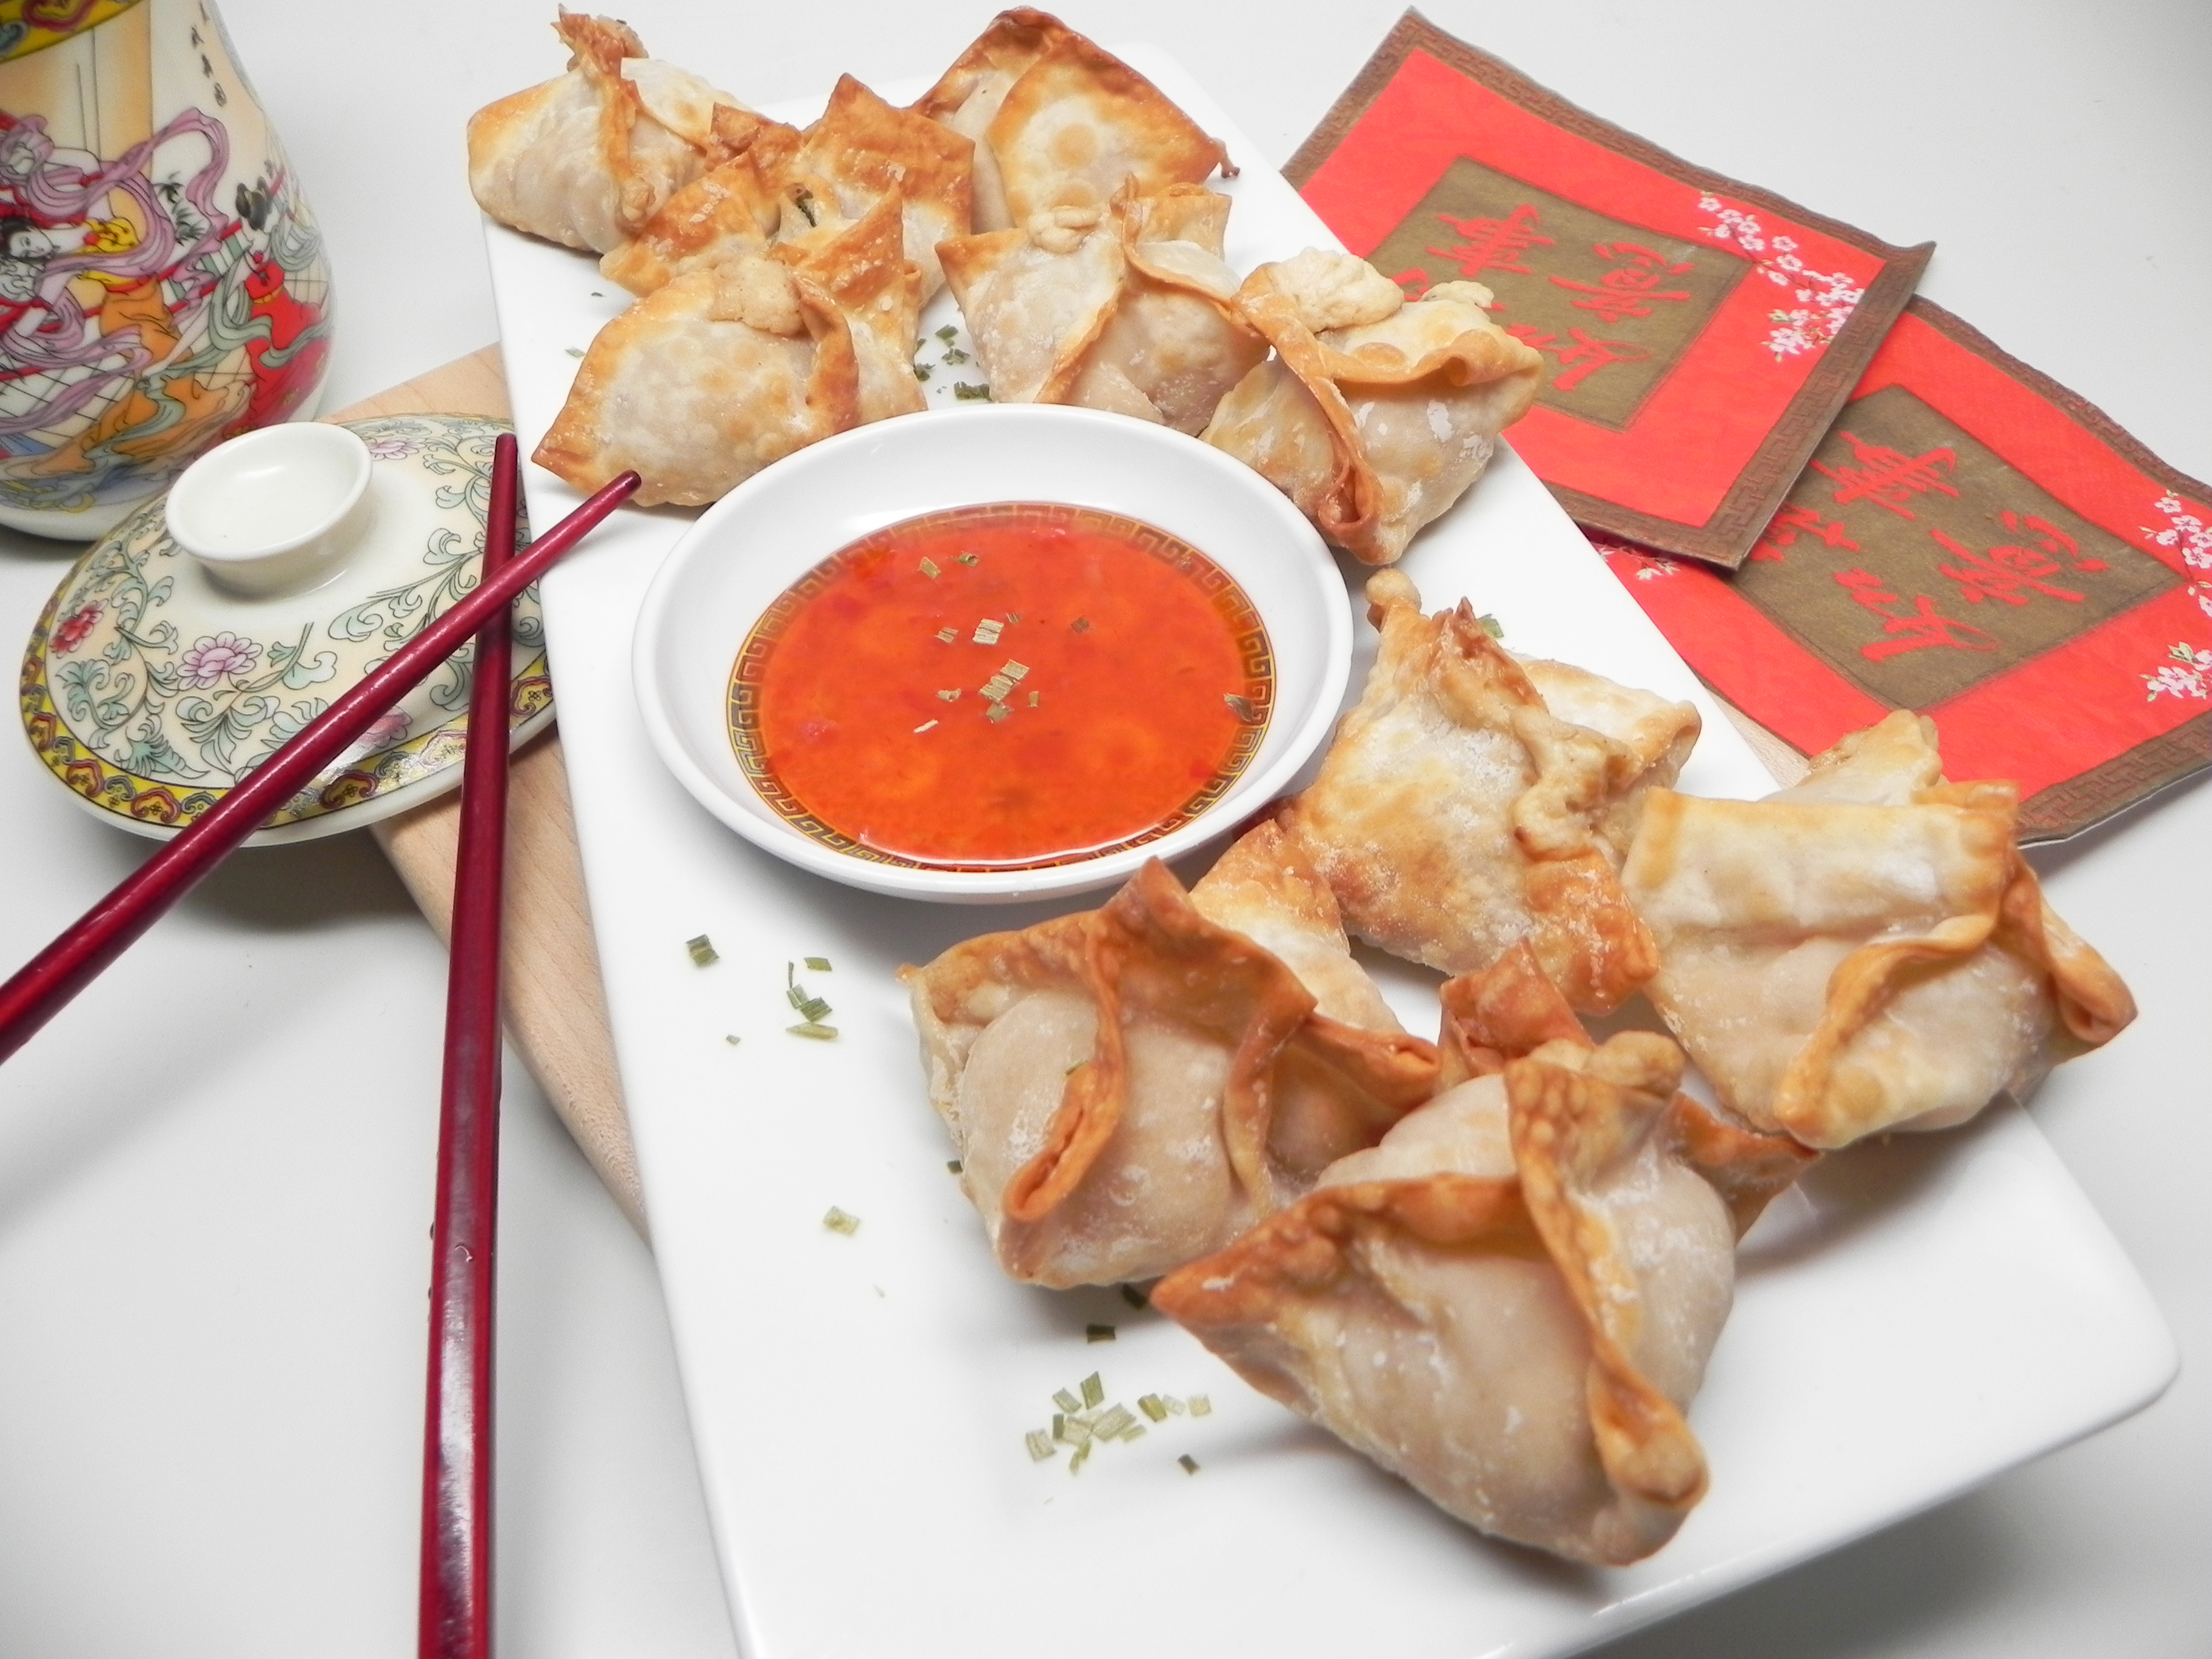 """""""Super crispy exterior with warm and fluffy pillow centers is what you'll get with this air fryer crab rangoon recipe,"""" says Soup Loving Nicole. """"Serve with sweet chili sauce for dipping, if desired."""""""